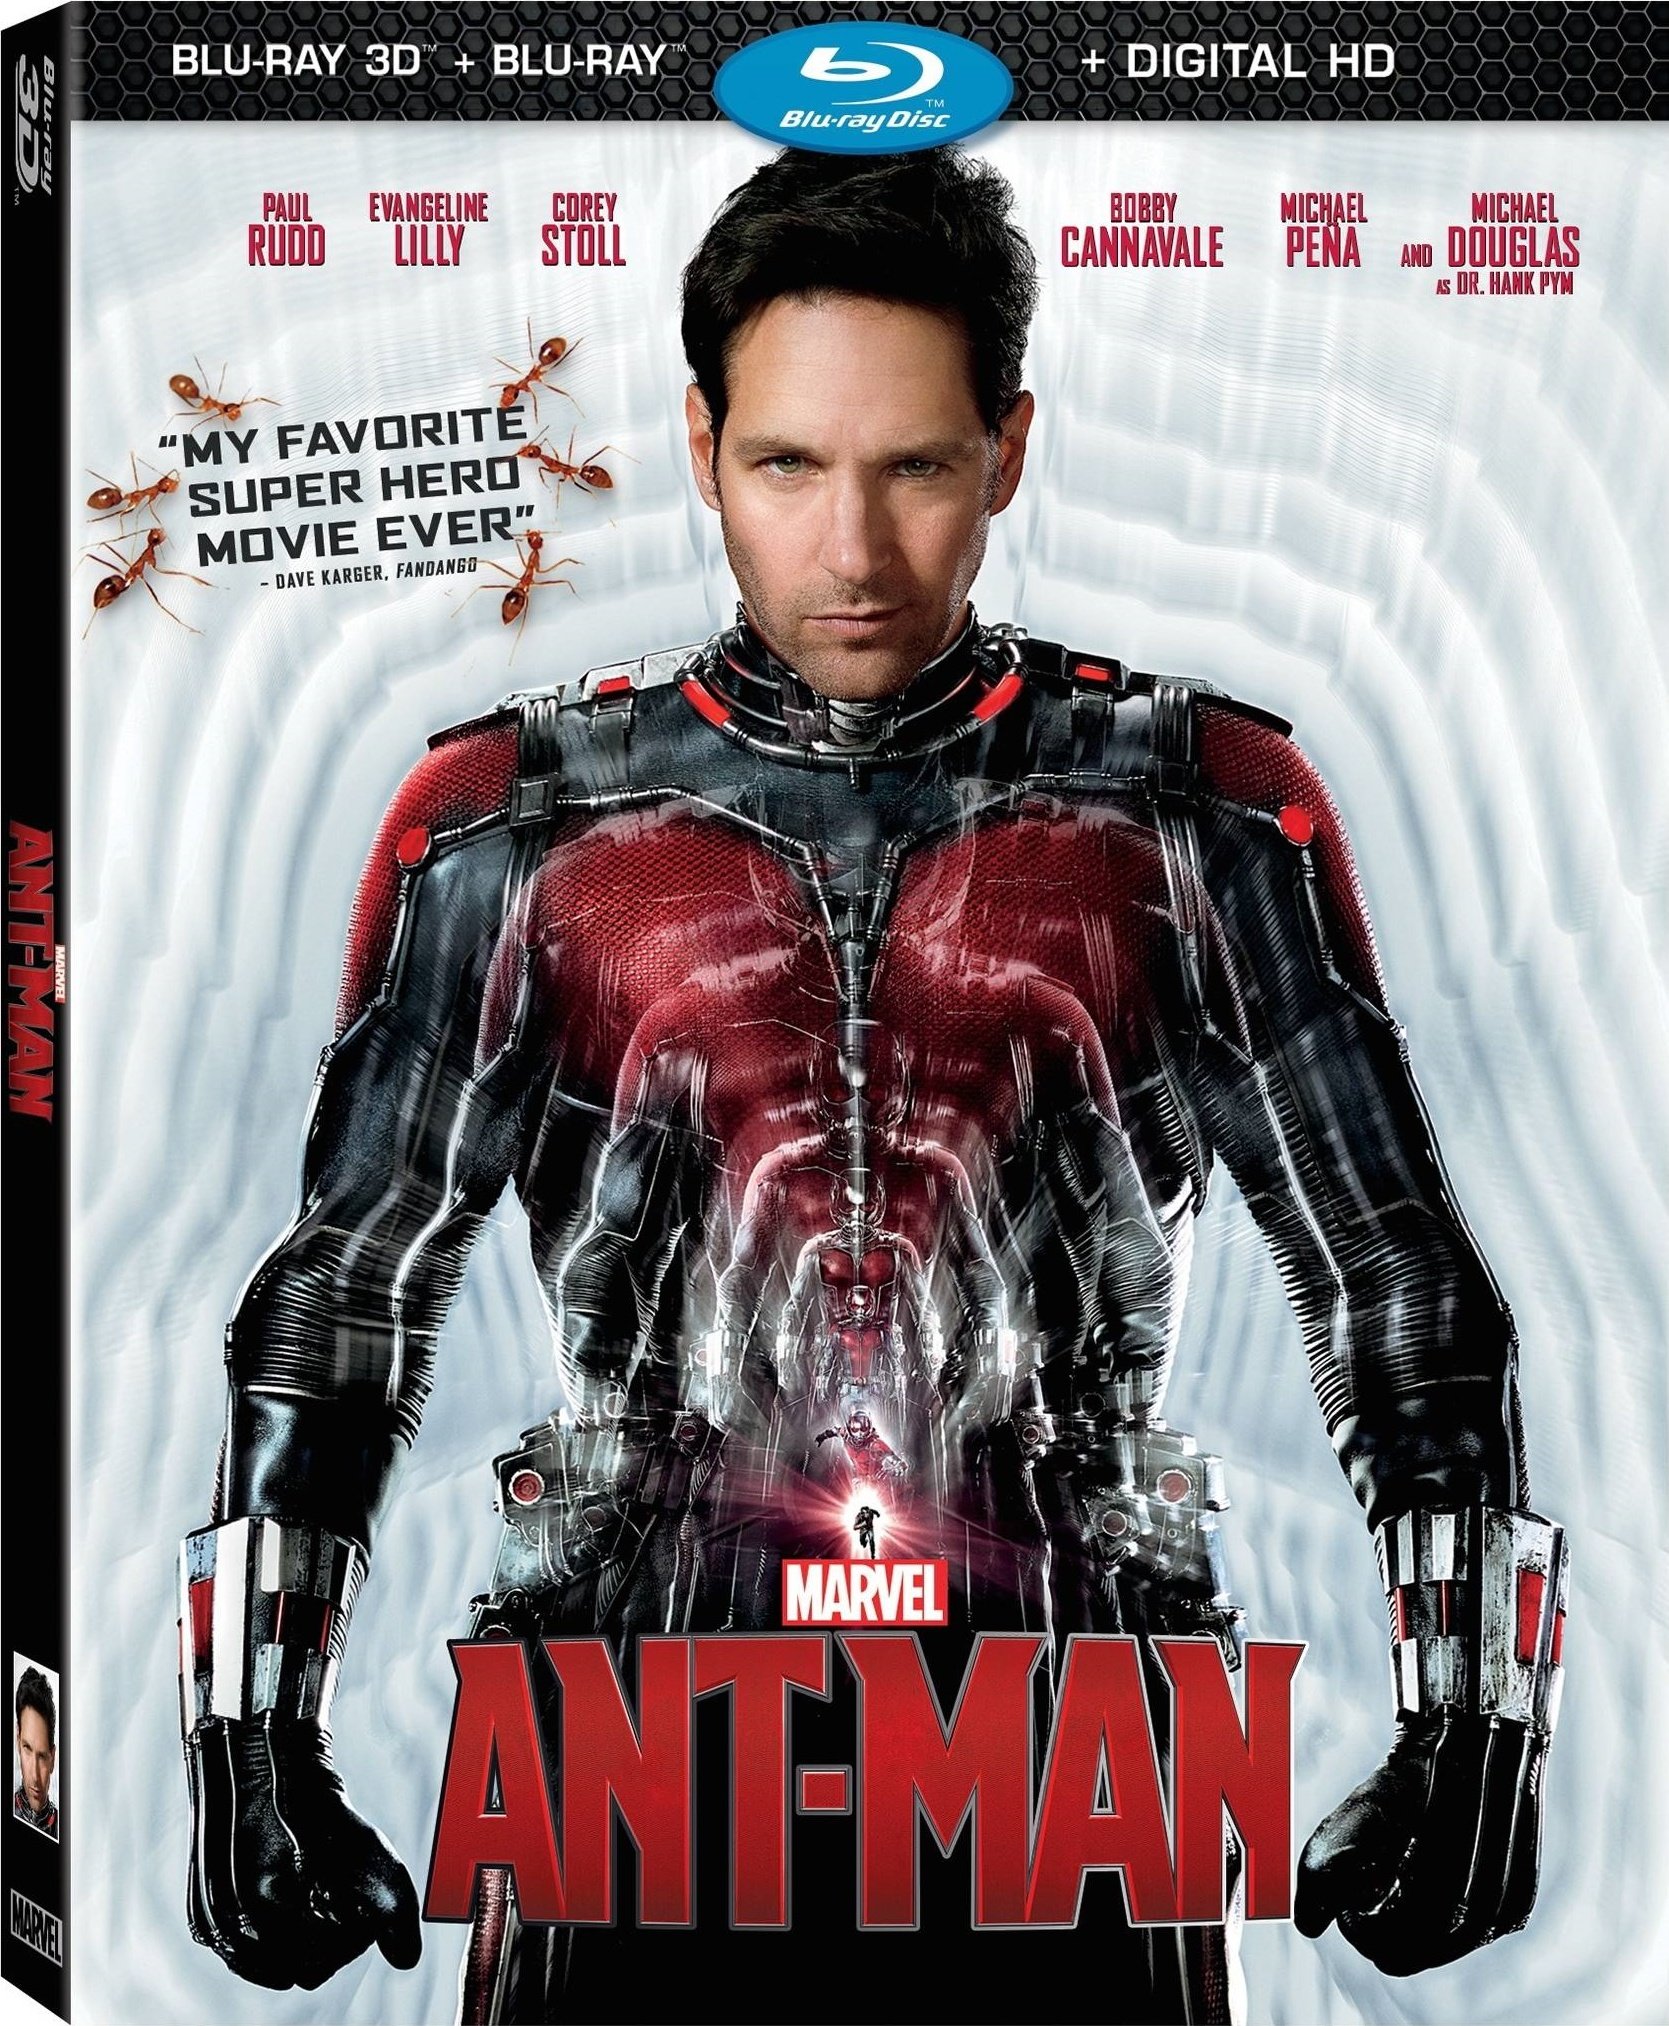 Ant-Man Blu-Ray 2D and 3D Review